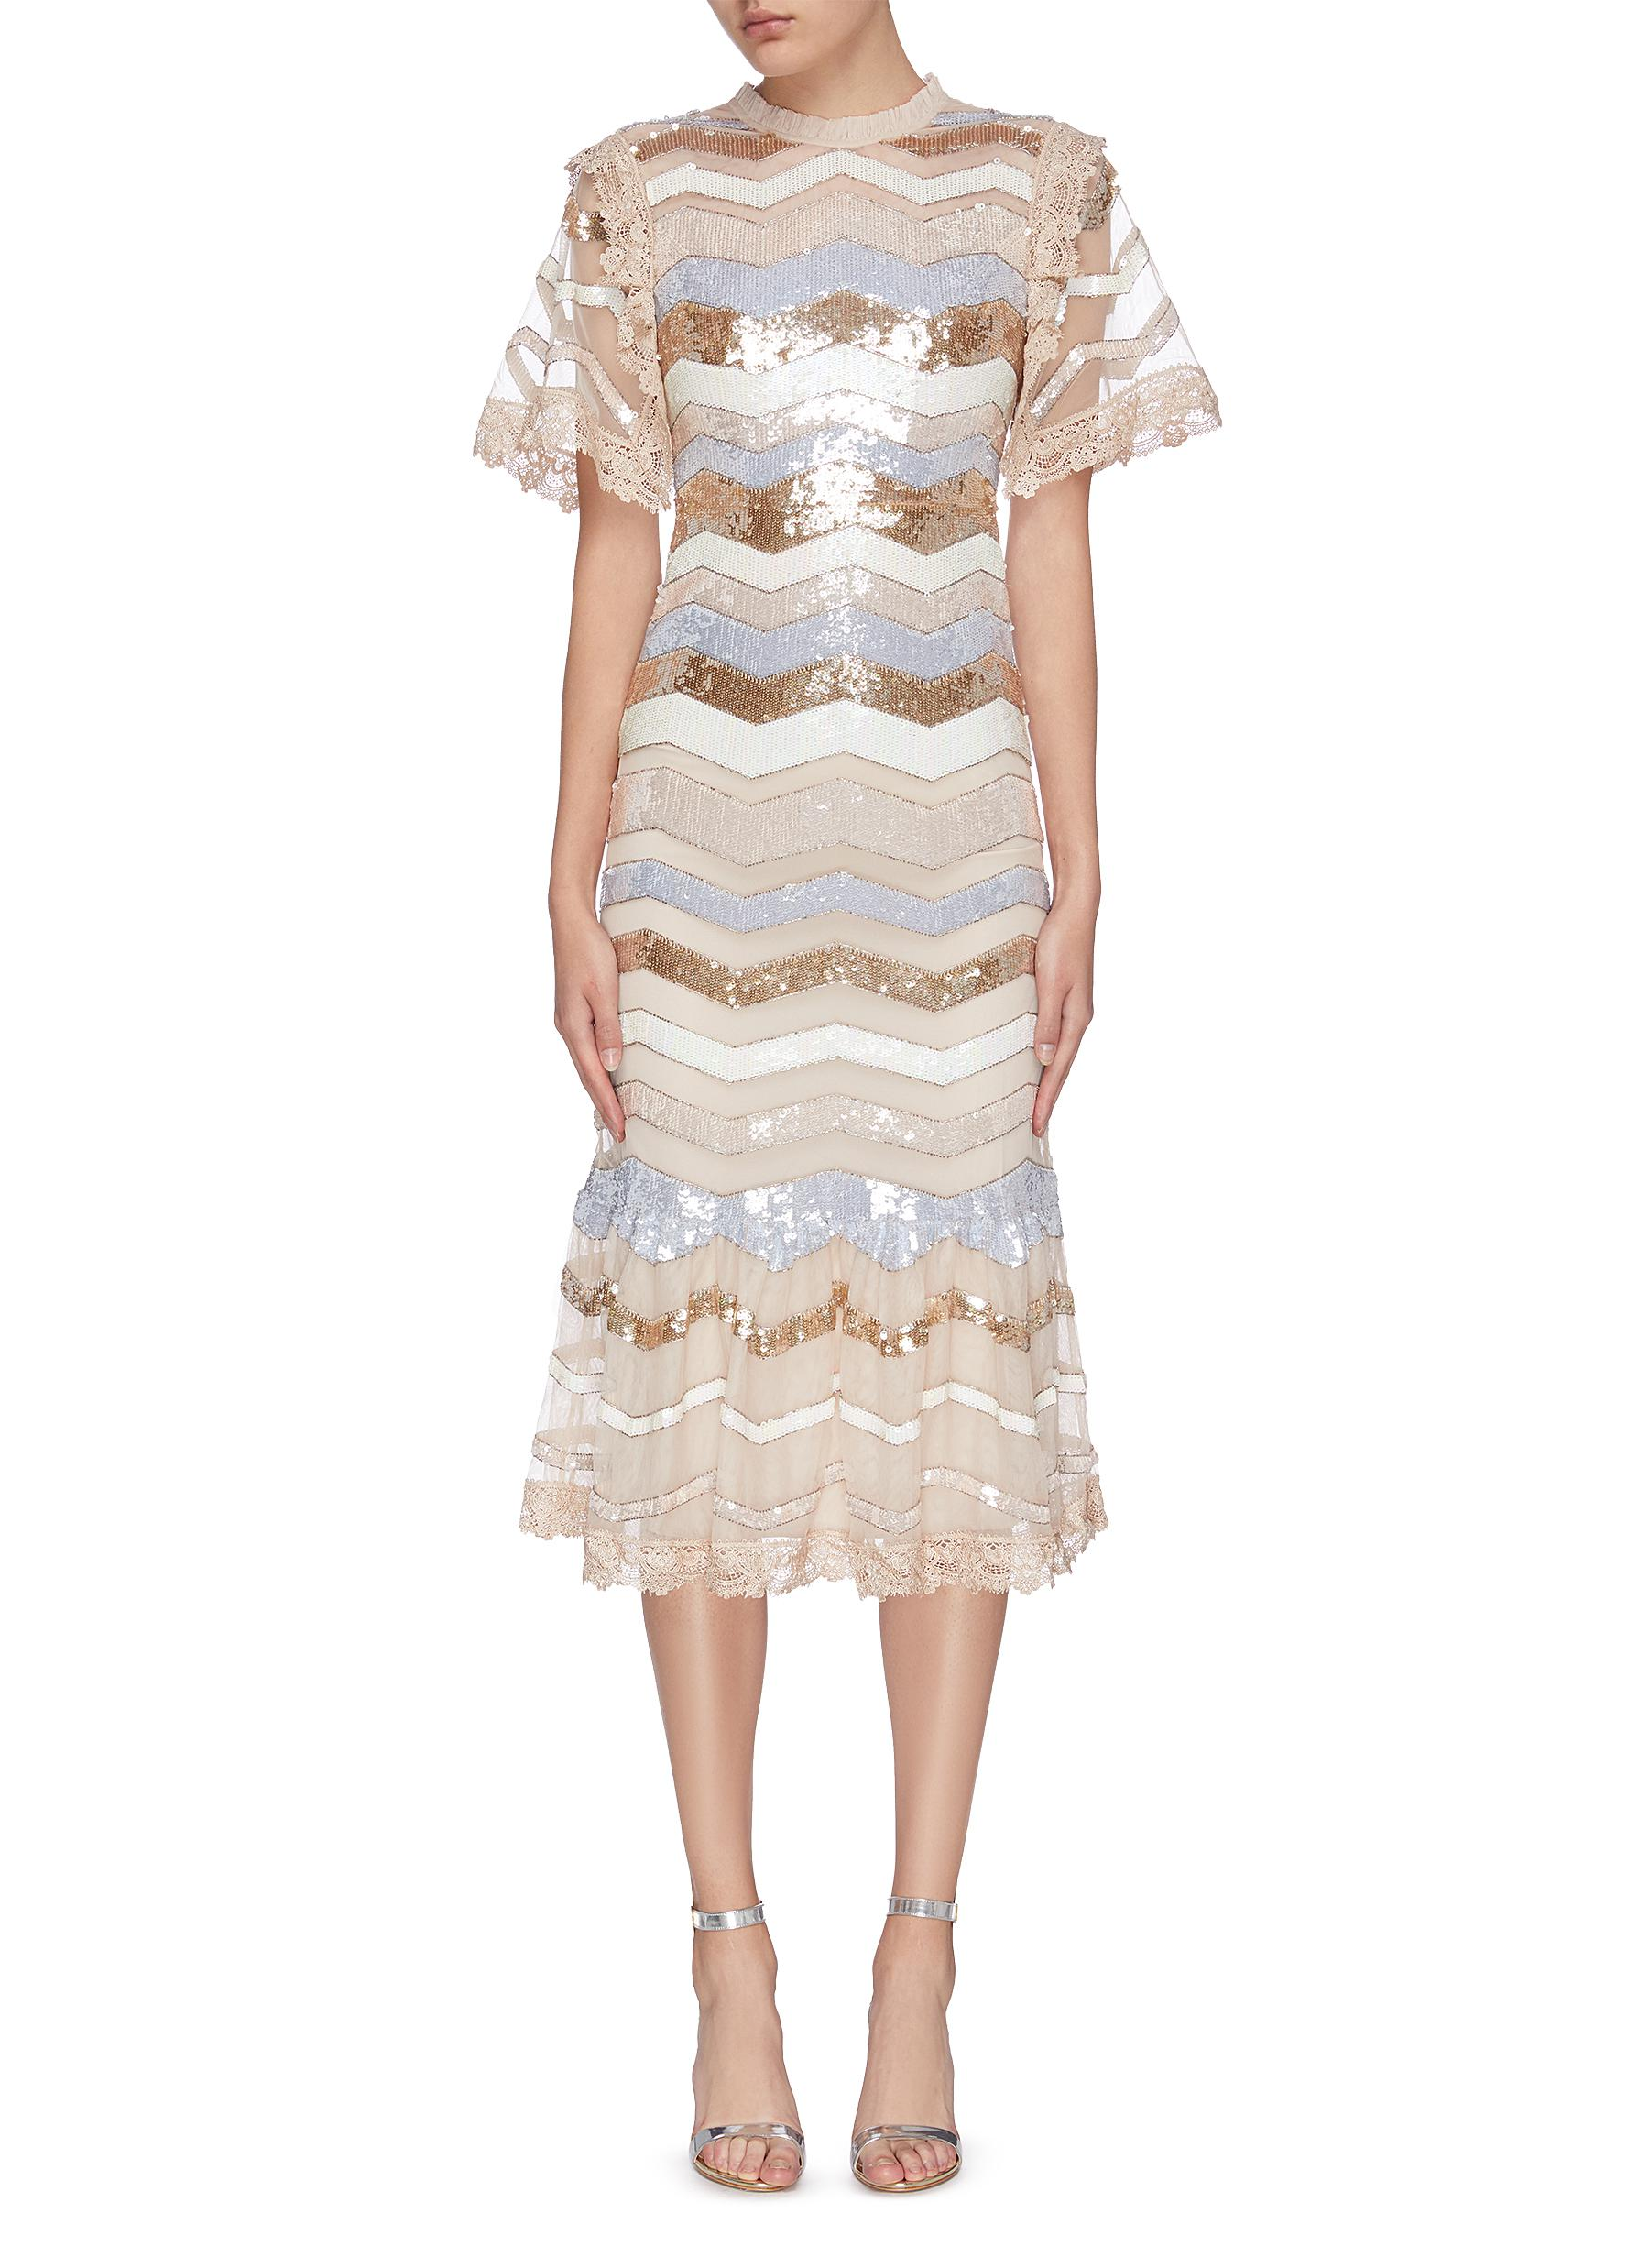 Buy Needle & Thread Dresses 'Alaska' sequin embellished striped dress